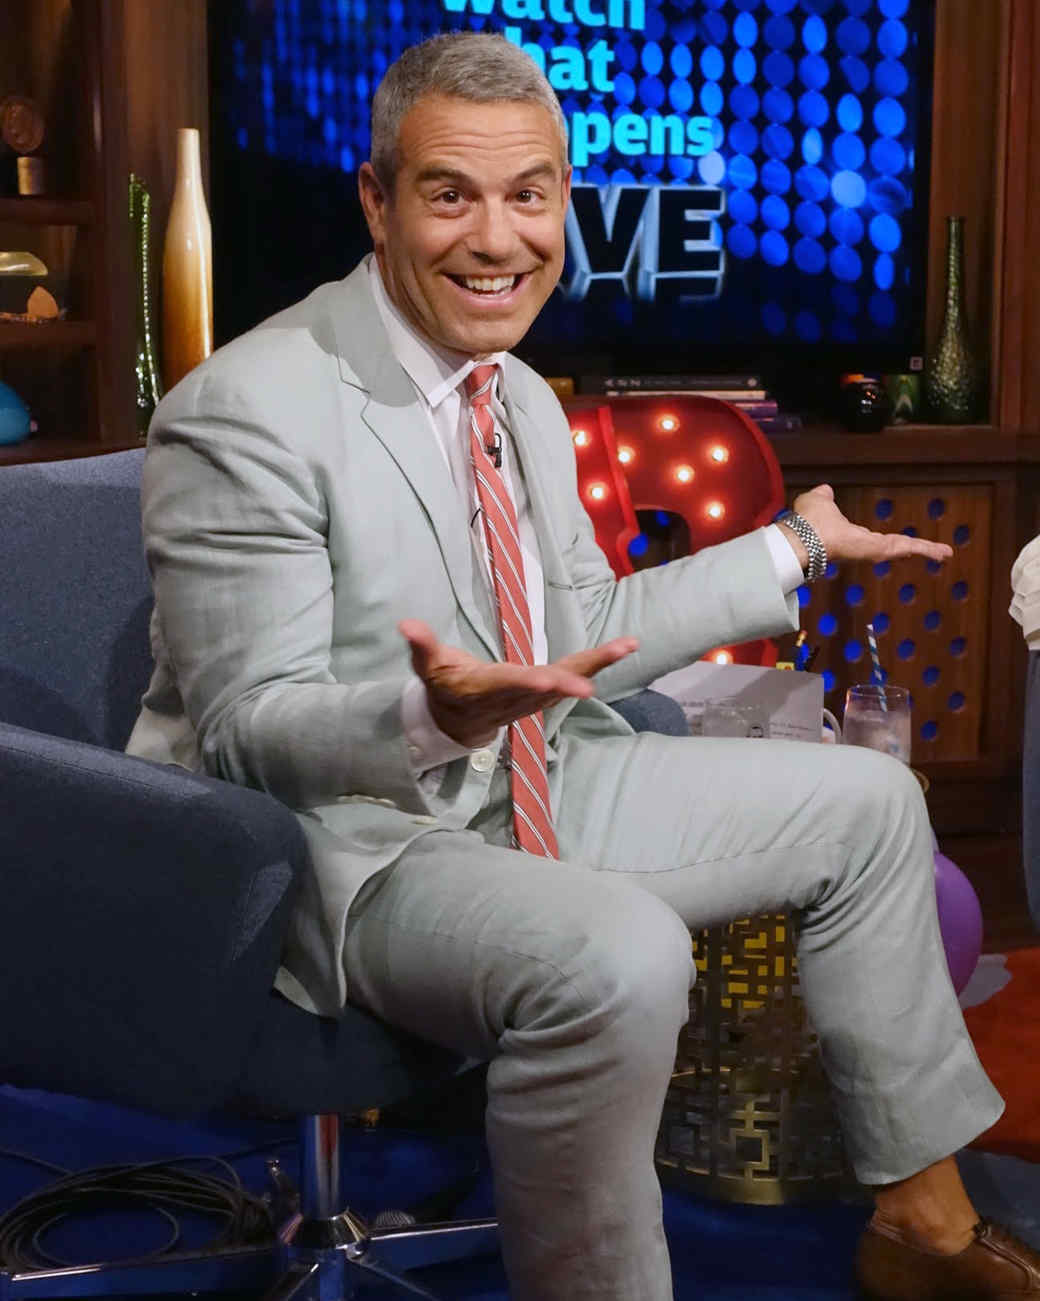 nyc-andy-cohen-36.jpg